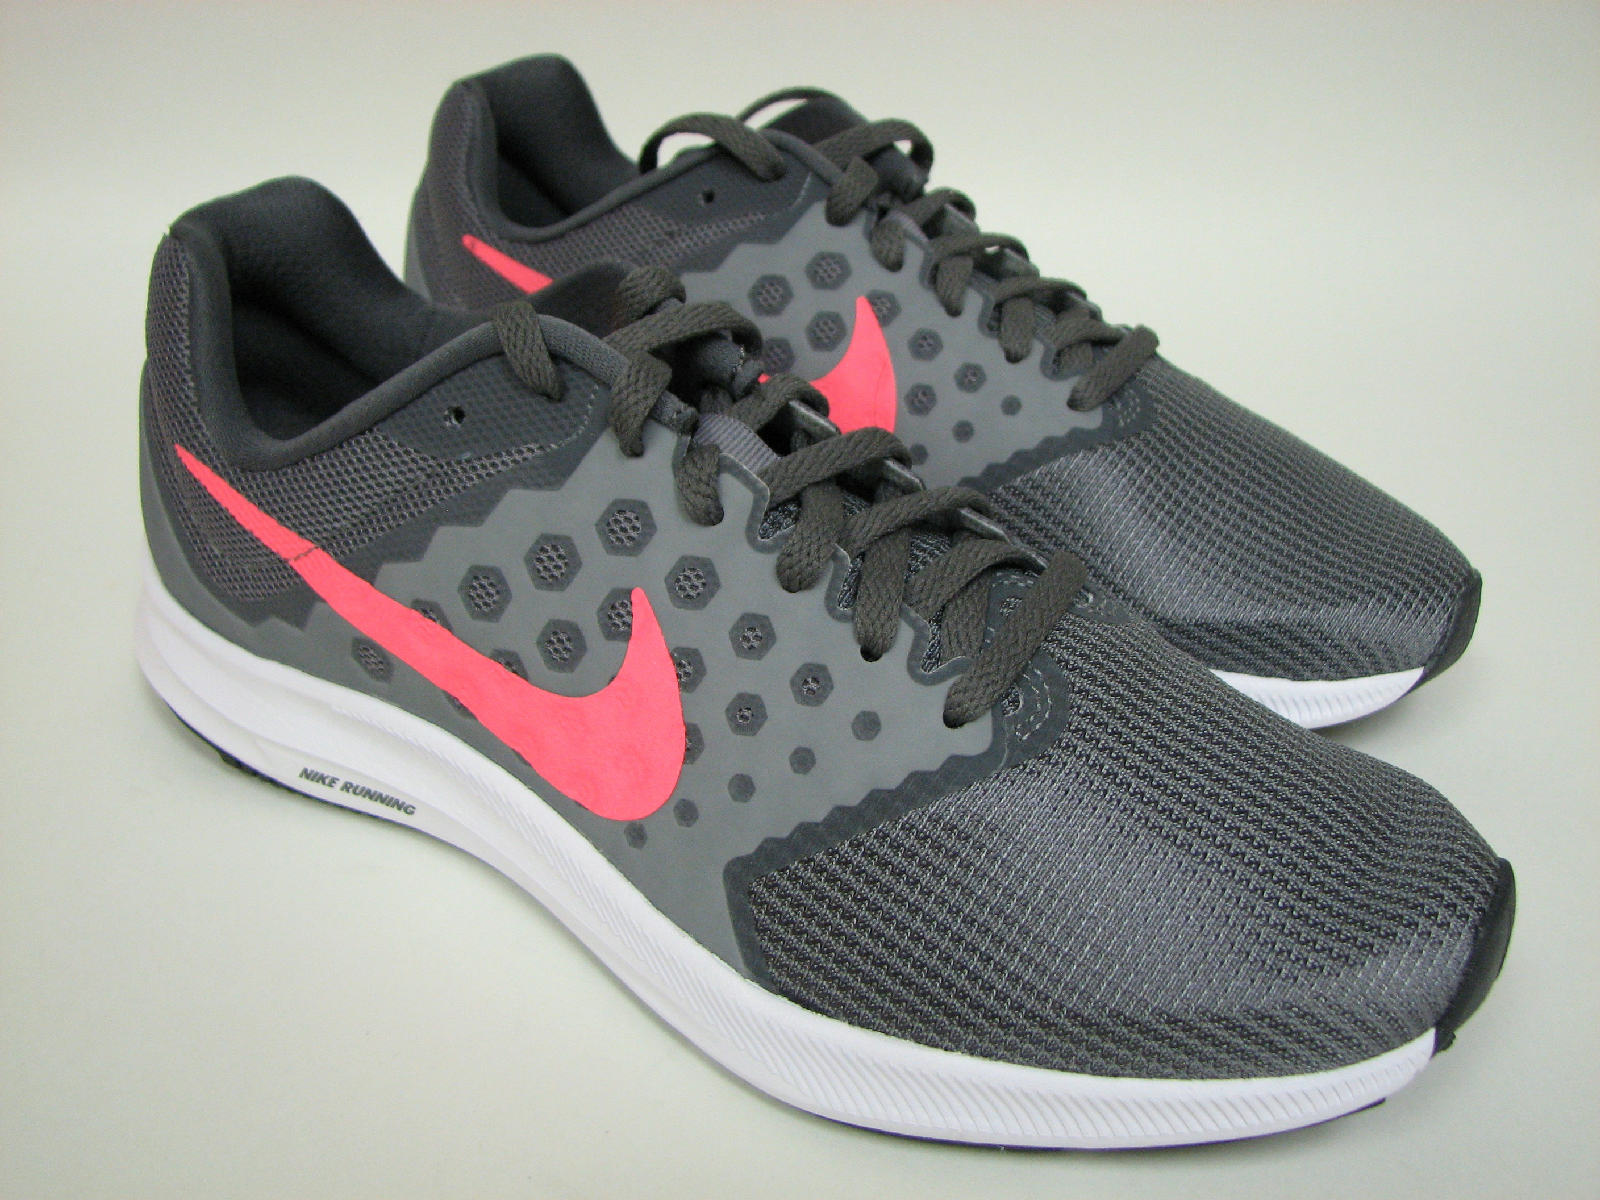 8d4c425c95a7 Nike Downshifter 7 Running Shoes 852466-001 Cool Grey Lava White ...